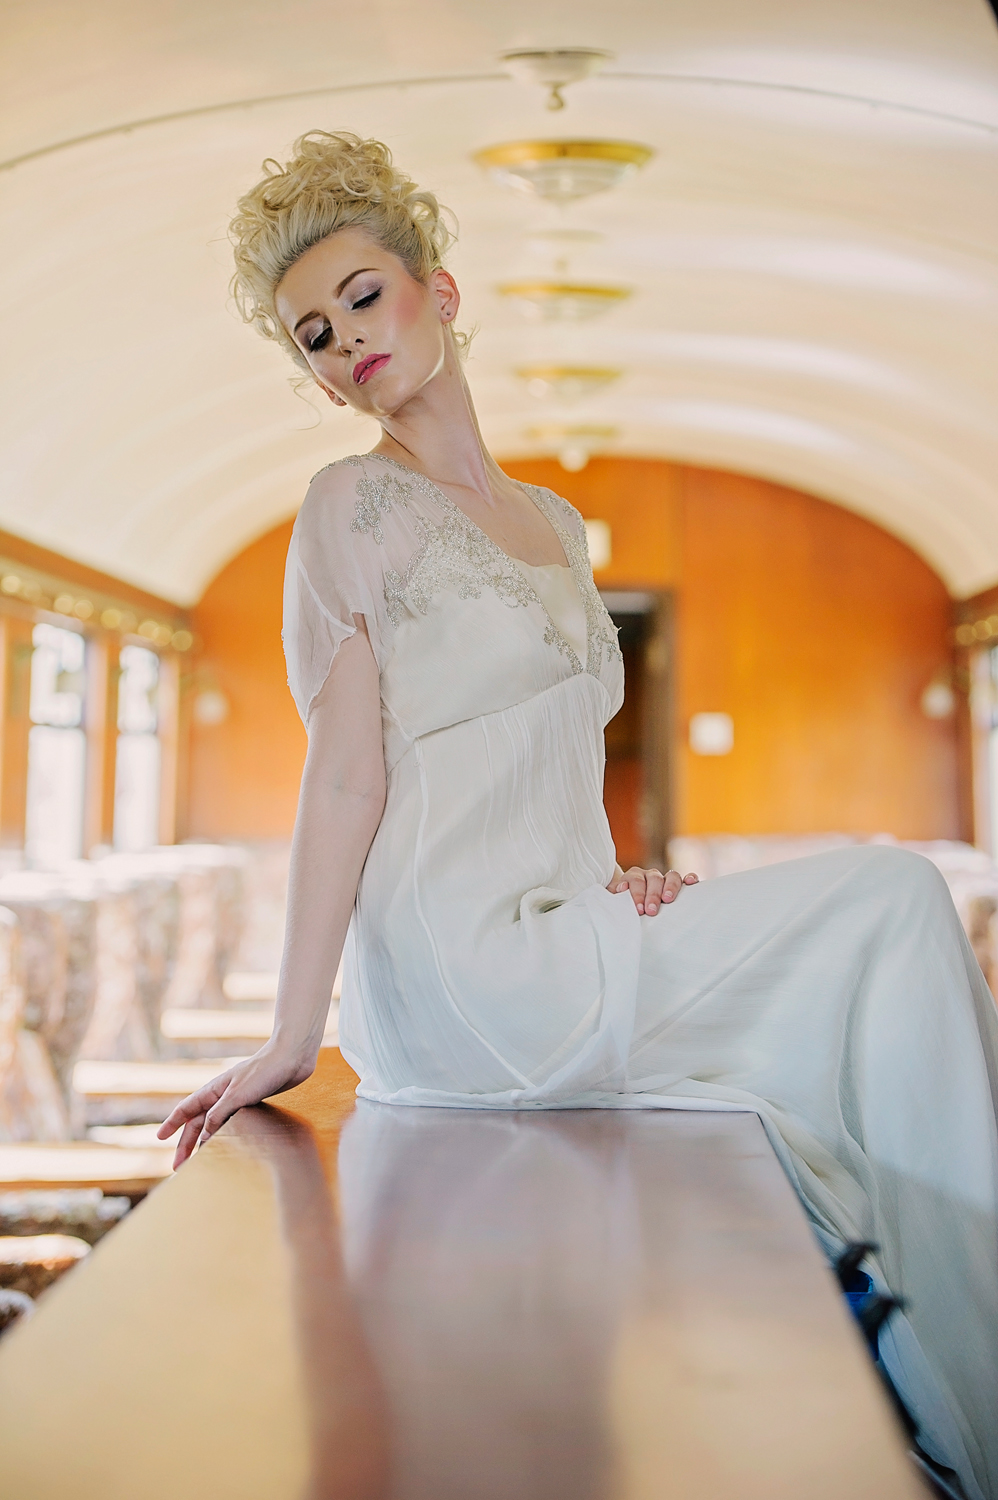 amber-tutton-model-pengelly-photography-colne-valley-railway-railway-bridal-shoot-12